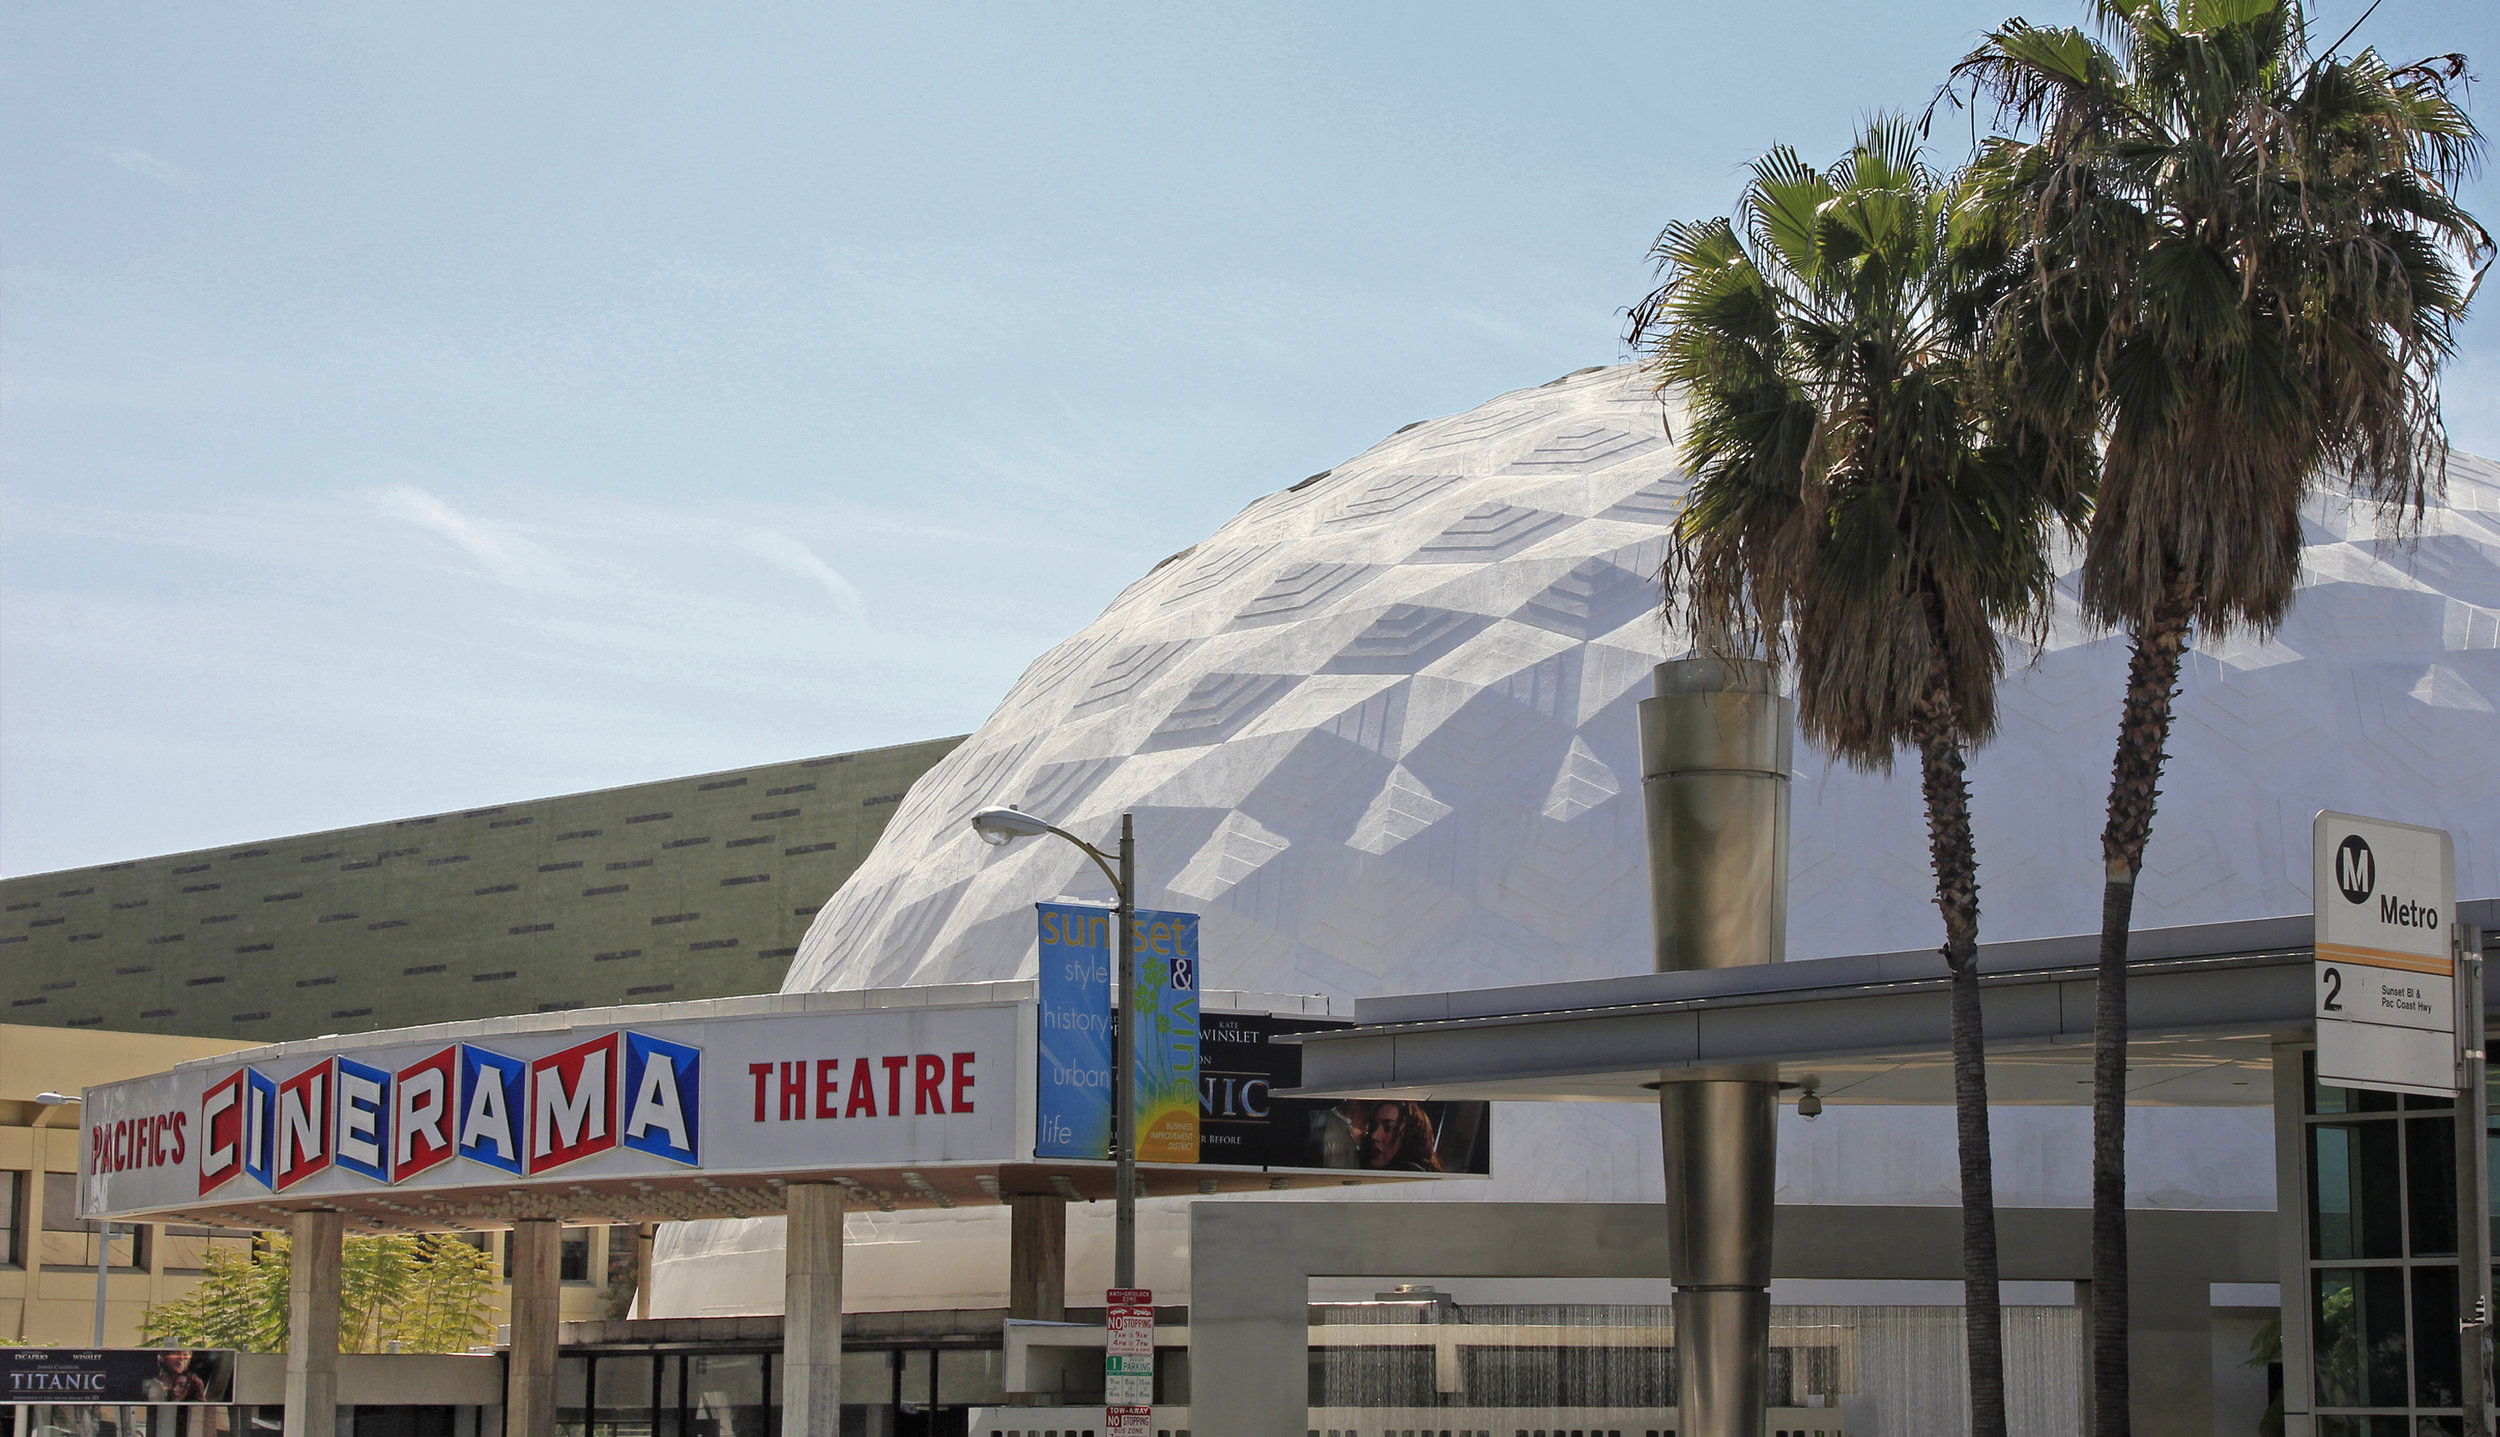 Cinerama Dome - Welton Beckett. 1963. The ArcLight cinemas 70mm theatre on Sunset Boulevard in Hollywood is one of only three dome theaters remaining in the world today.